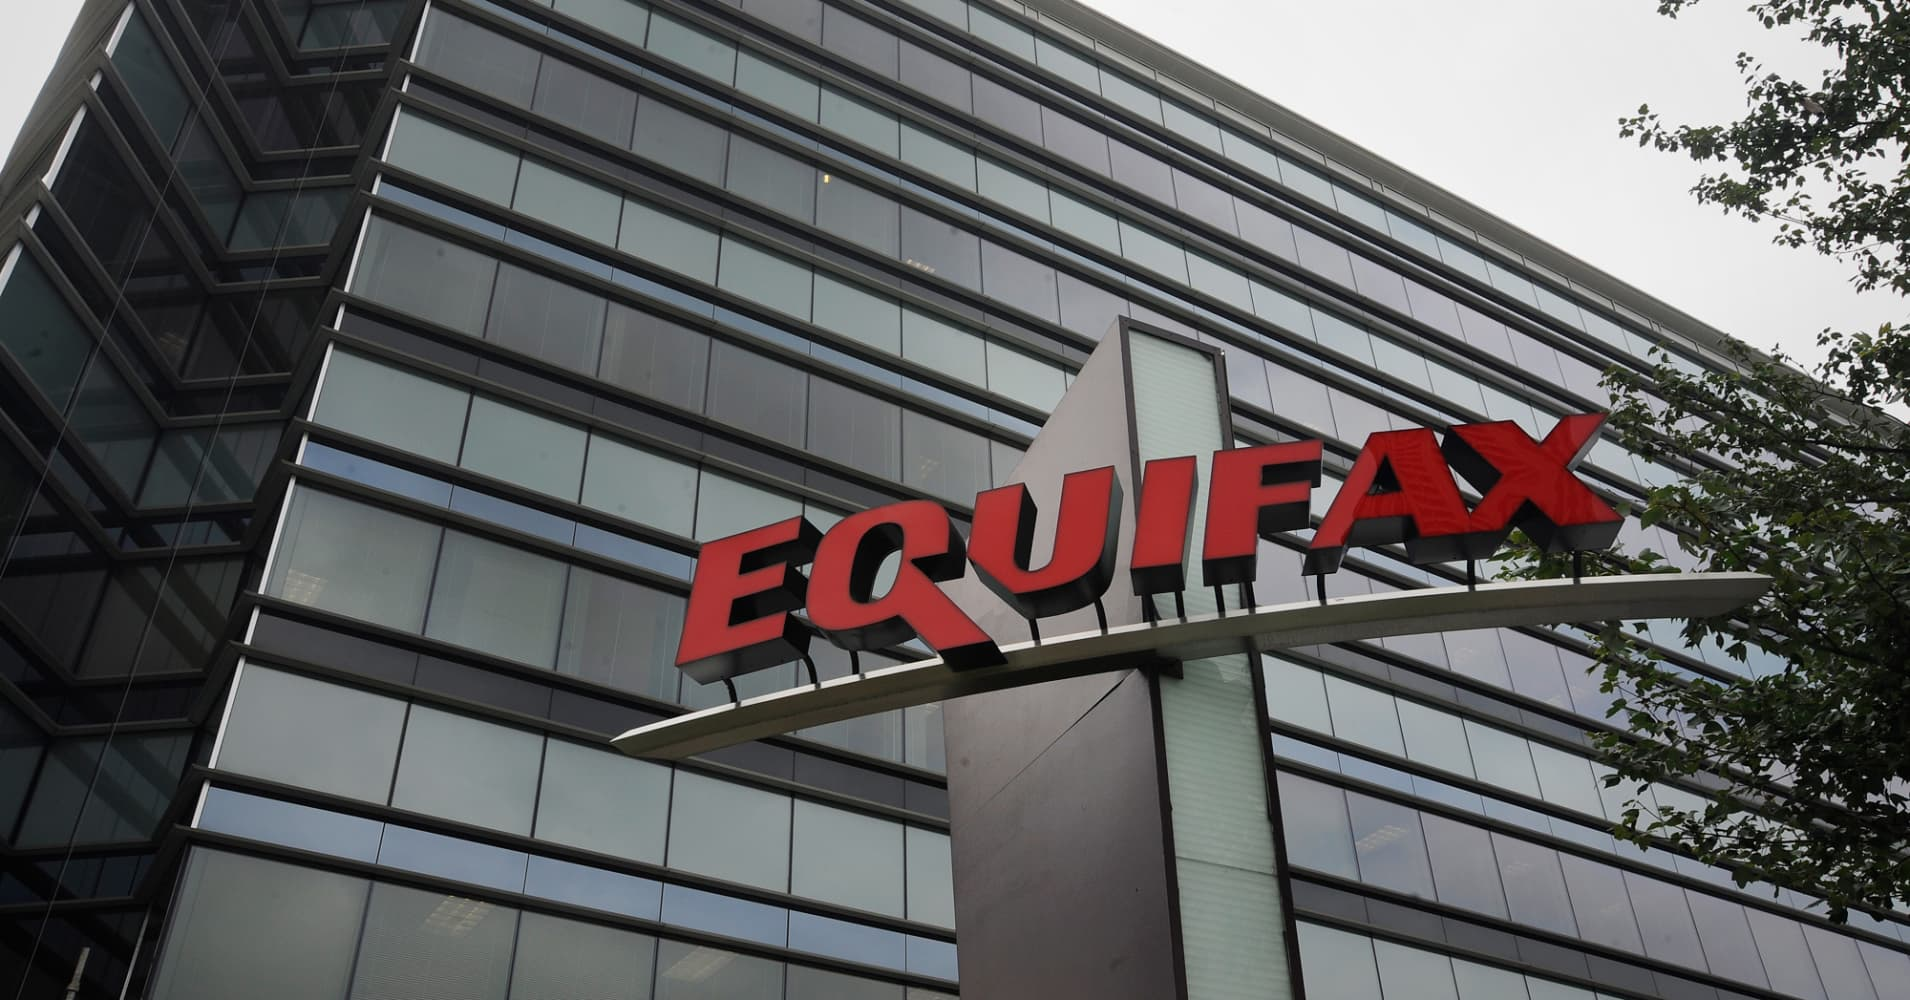 Credit reporting firm Equifax says data breach could potentially affect 143 million US consumers